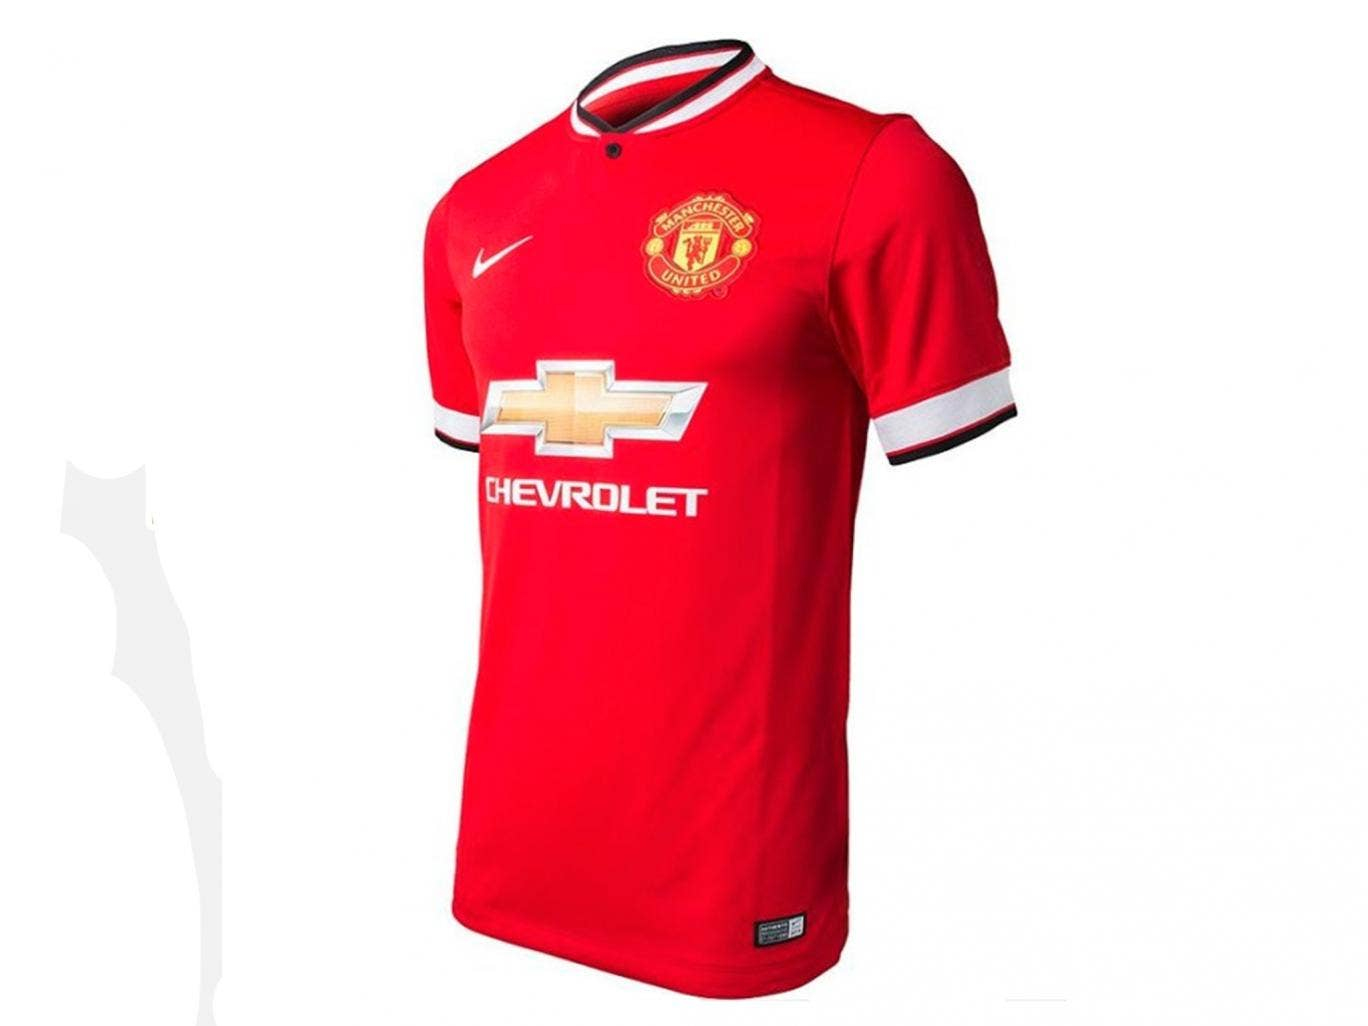 A leaked image purporting to be the new Manchester United shirt